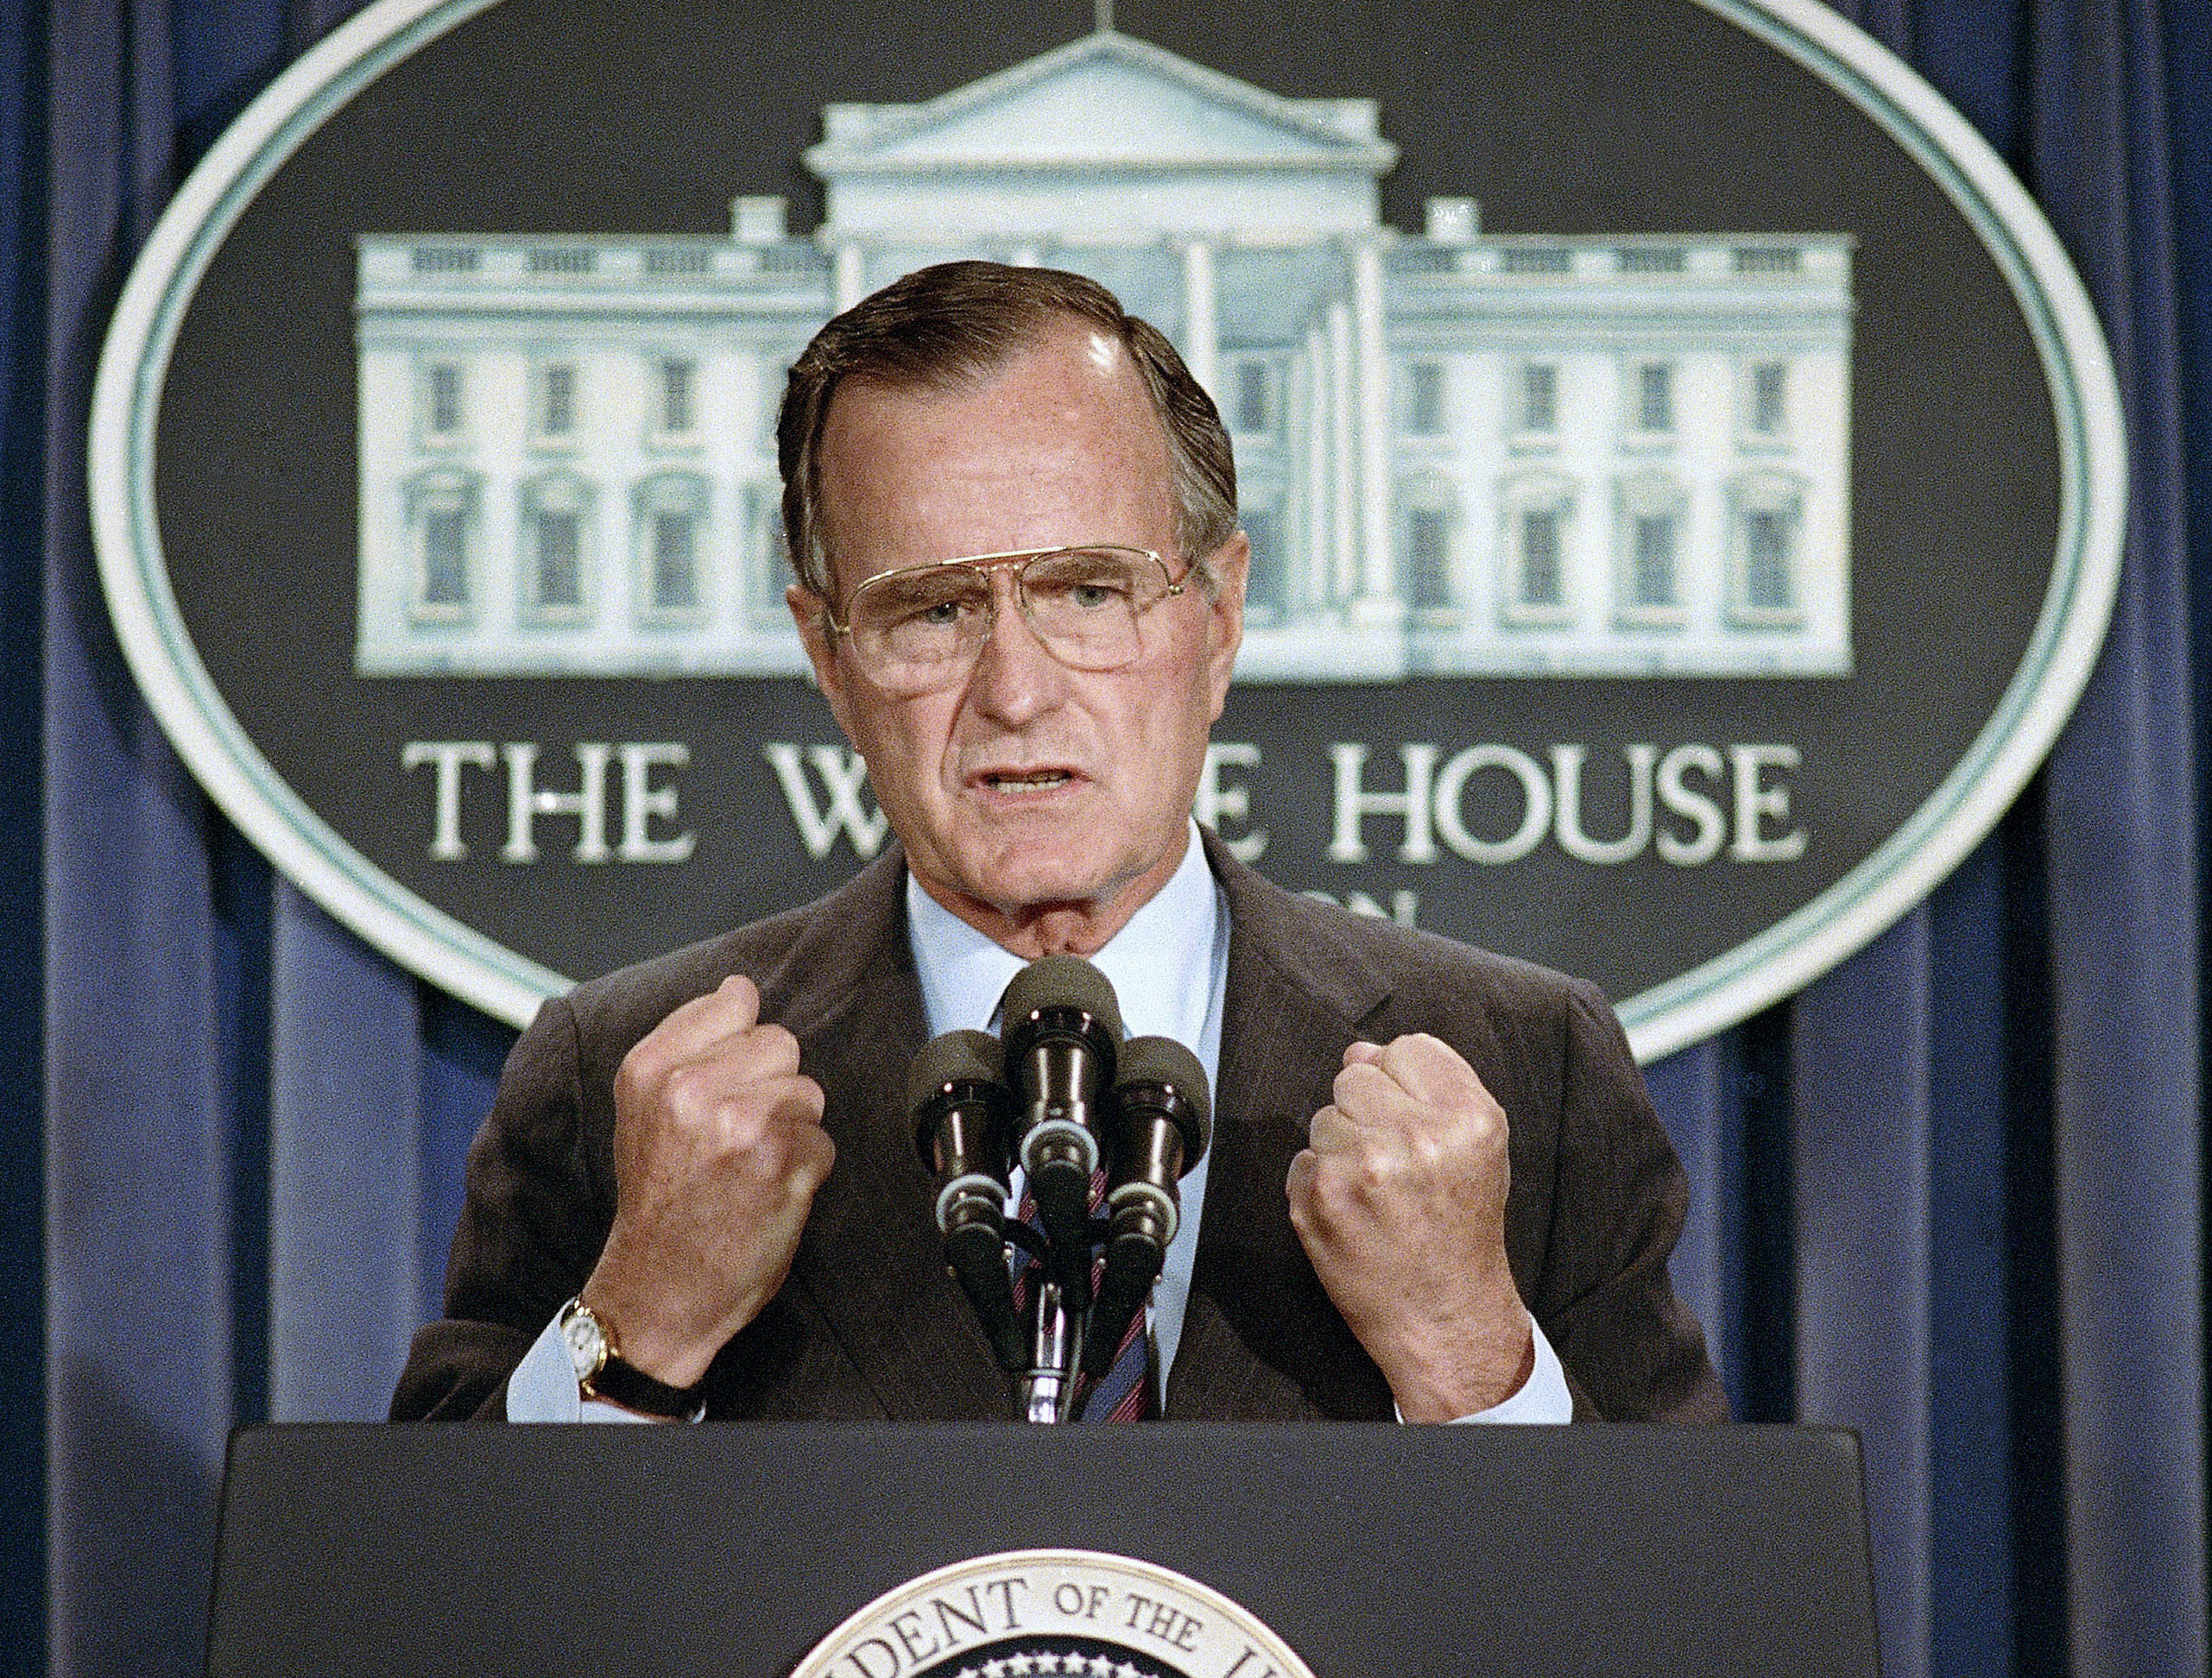 In this June 5, 1989, photo, U.S. President George H.W. Bush holds a news conference at the White House in Washington where he condemned the Chinese crackdown on pro-democracy demonstrators in Beijing's Tiananmen Square. (AP Photo/Marcy Nighswander, File)